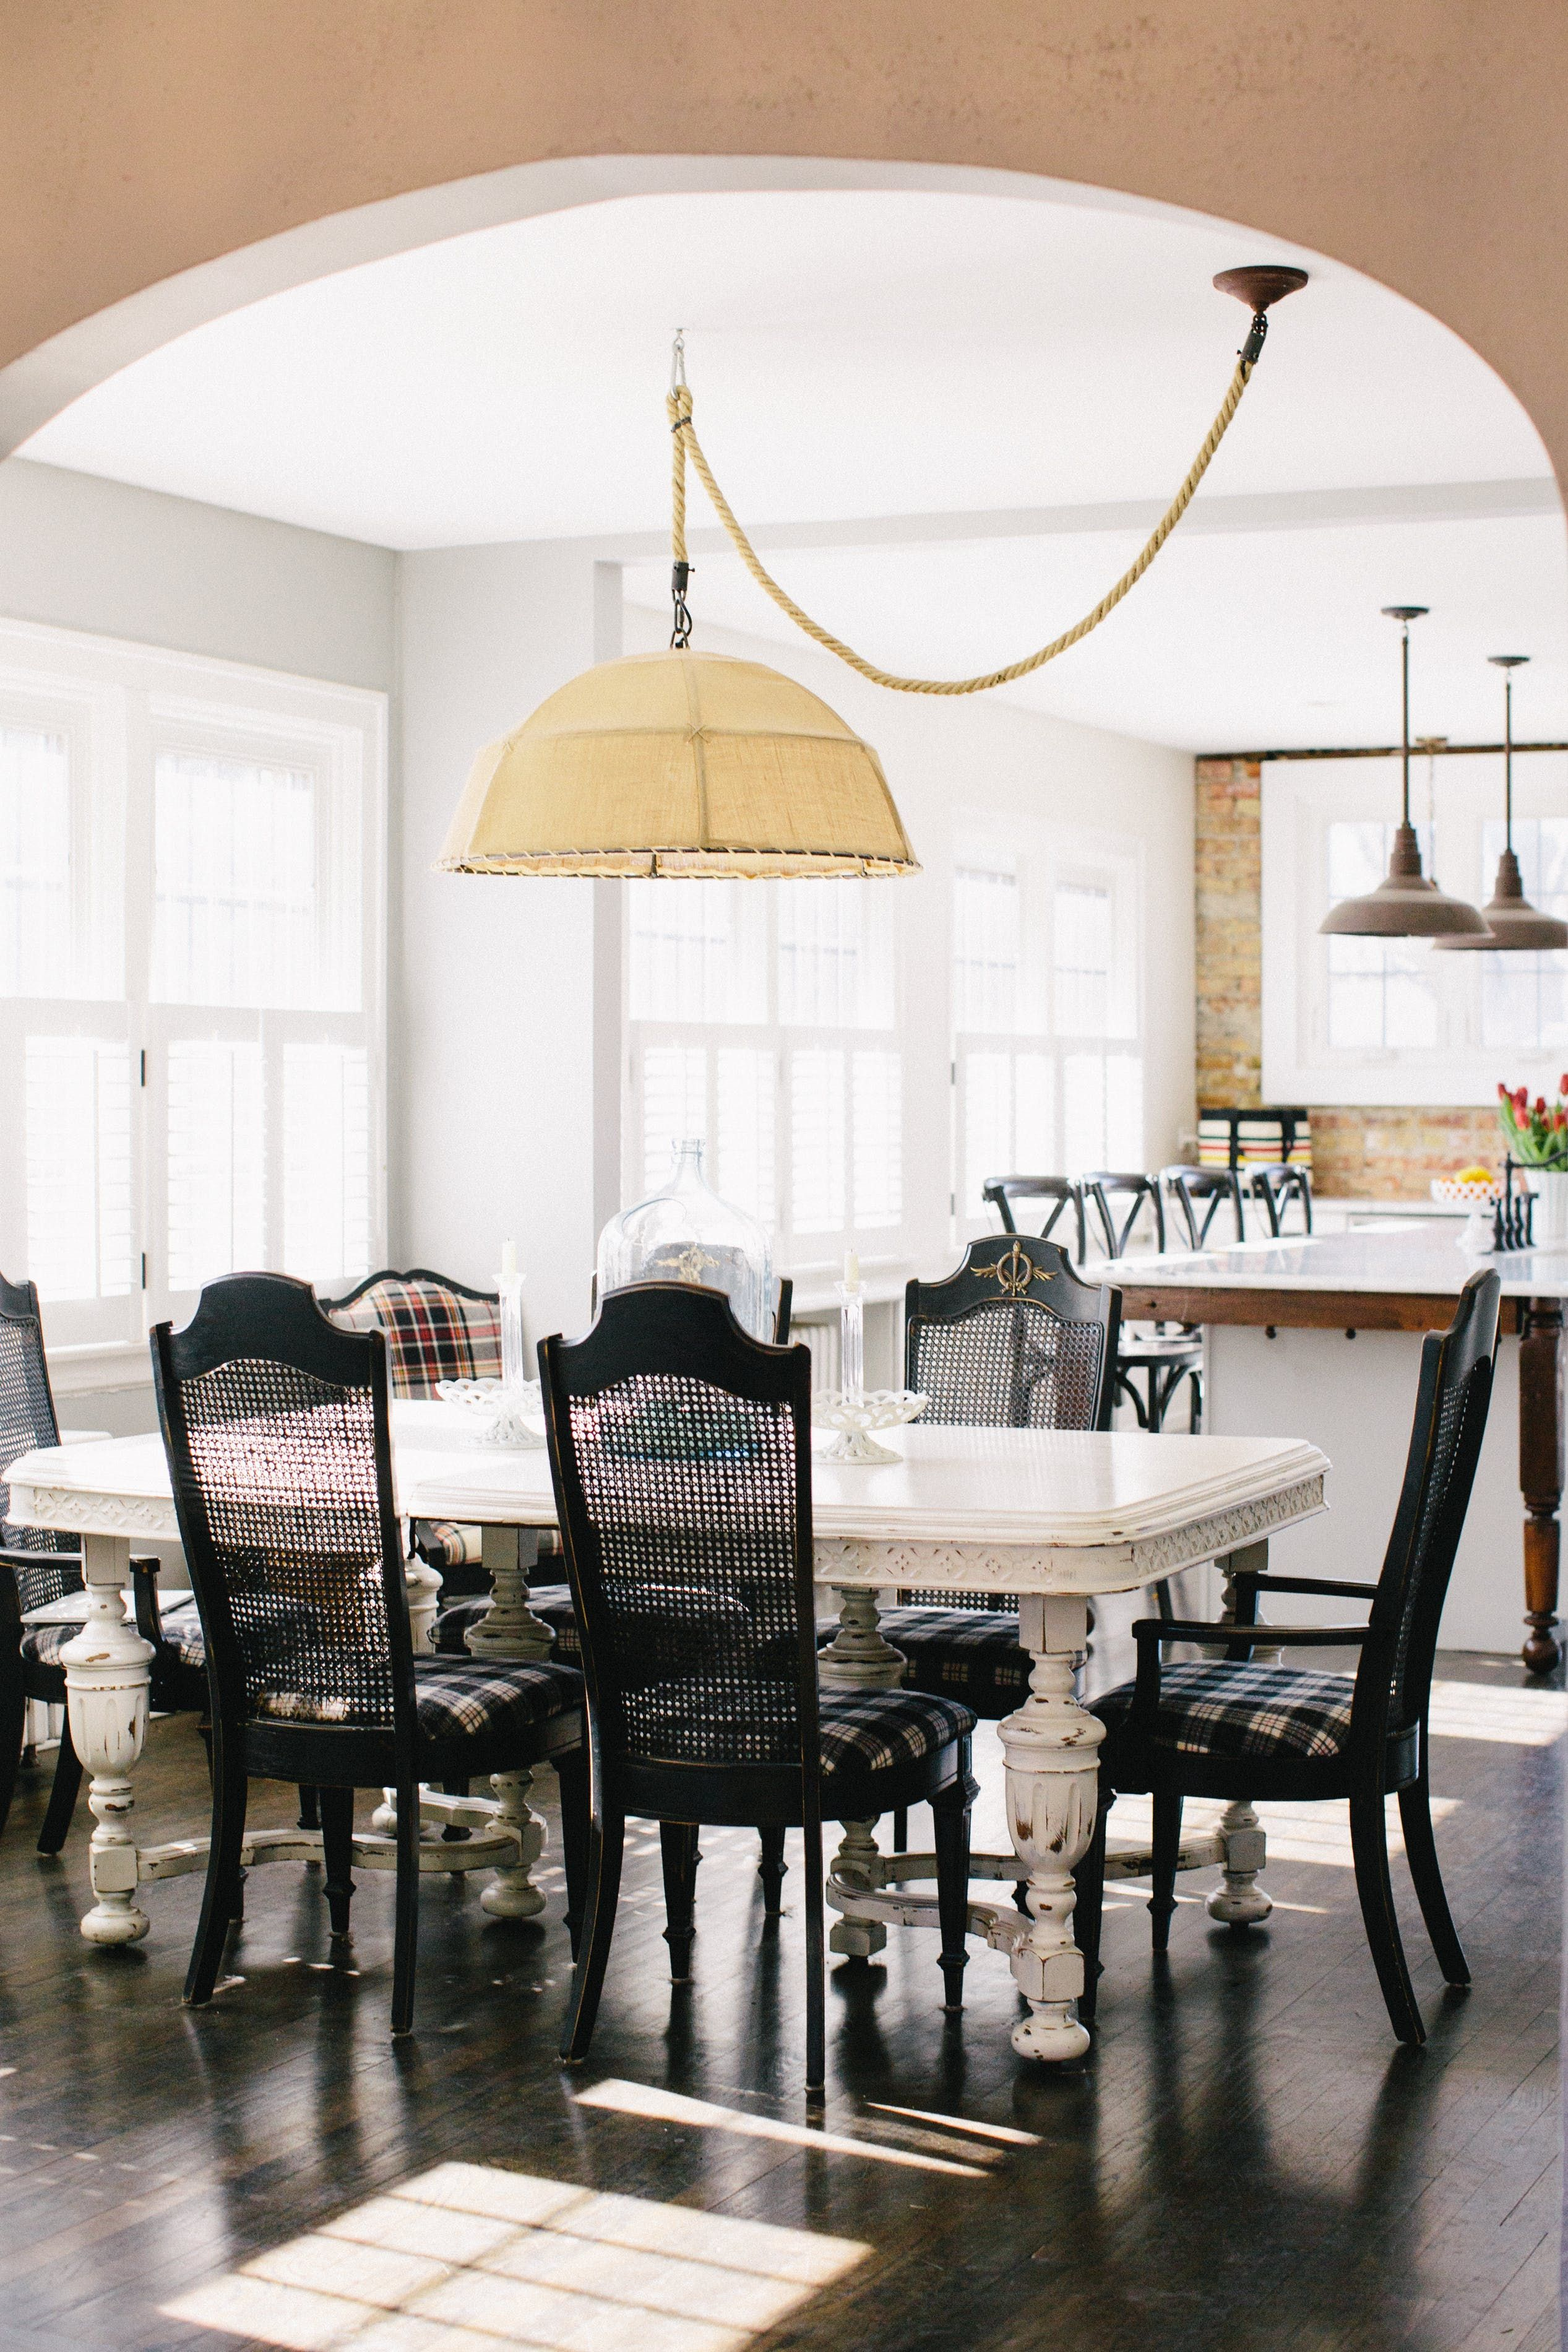 Tour a Cozy English Cottage in Illinois | Open kitchens, Dining room ...